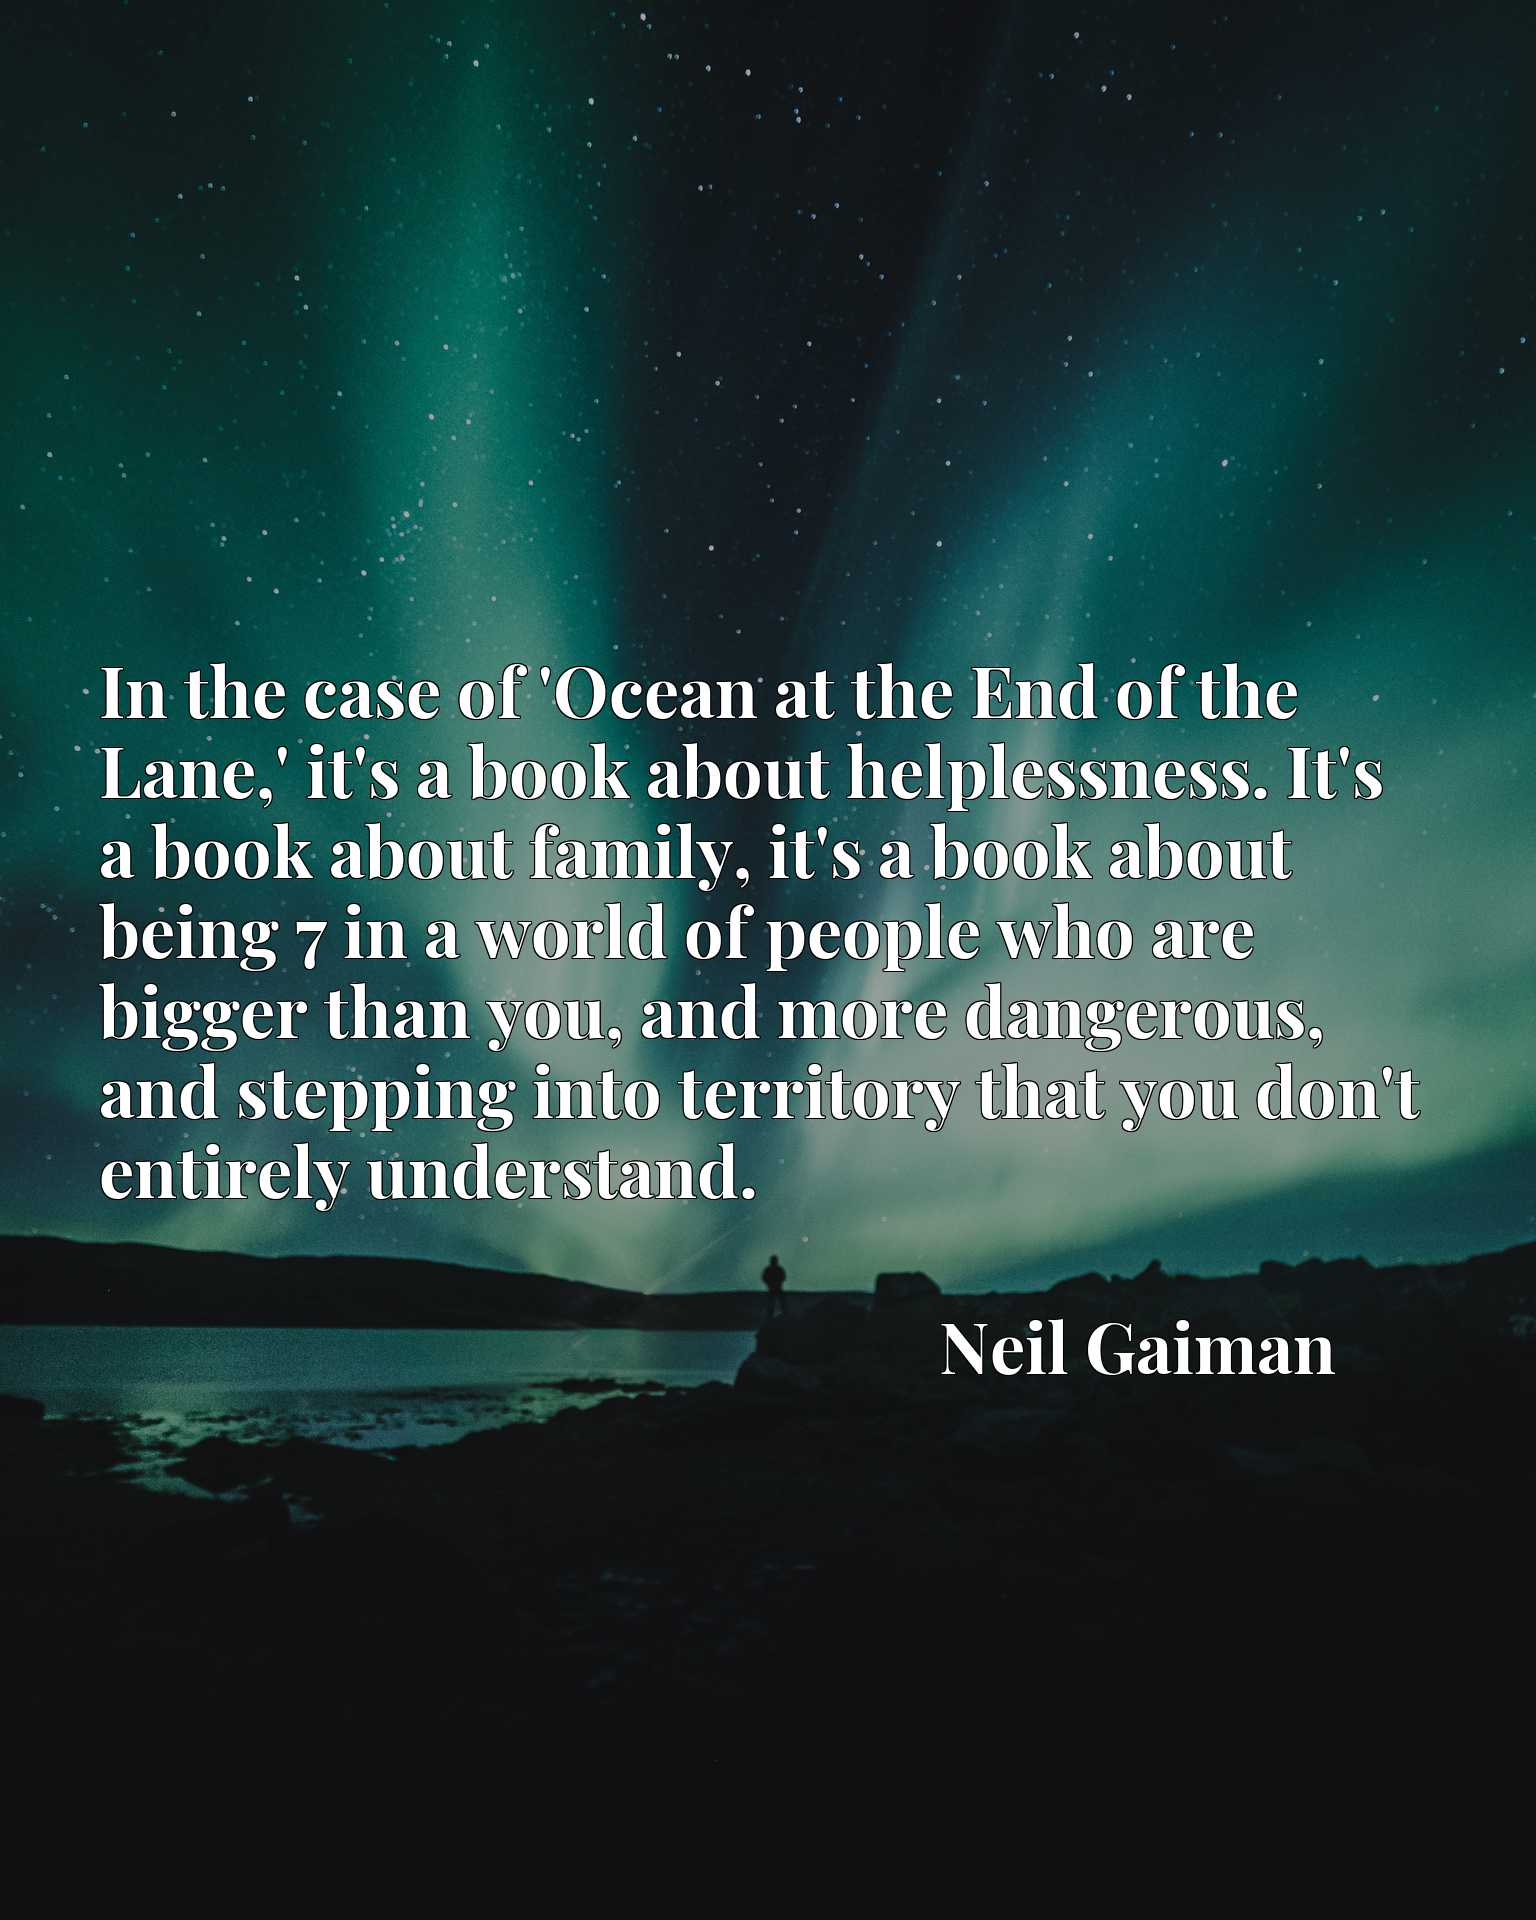 In the case of 'Ocean at the End of the Lane,' it's a book about helplessness. It's a book about family, it's a book about being 7 in a world of people who are bigger than you, and more dangerous, and stepping into territory that you don't entirely understand.